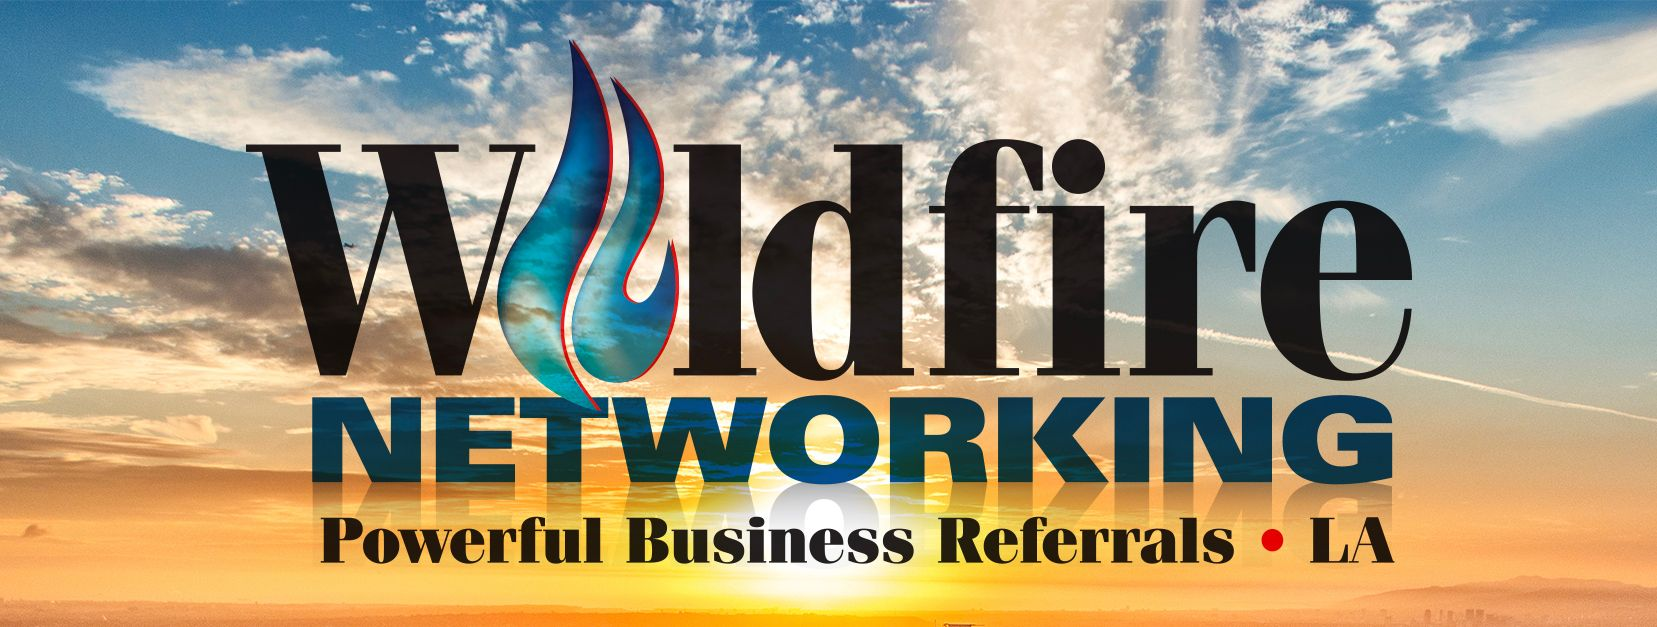 WILDFIRE BUSINESS NETWORKING – LOS ANGELES